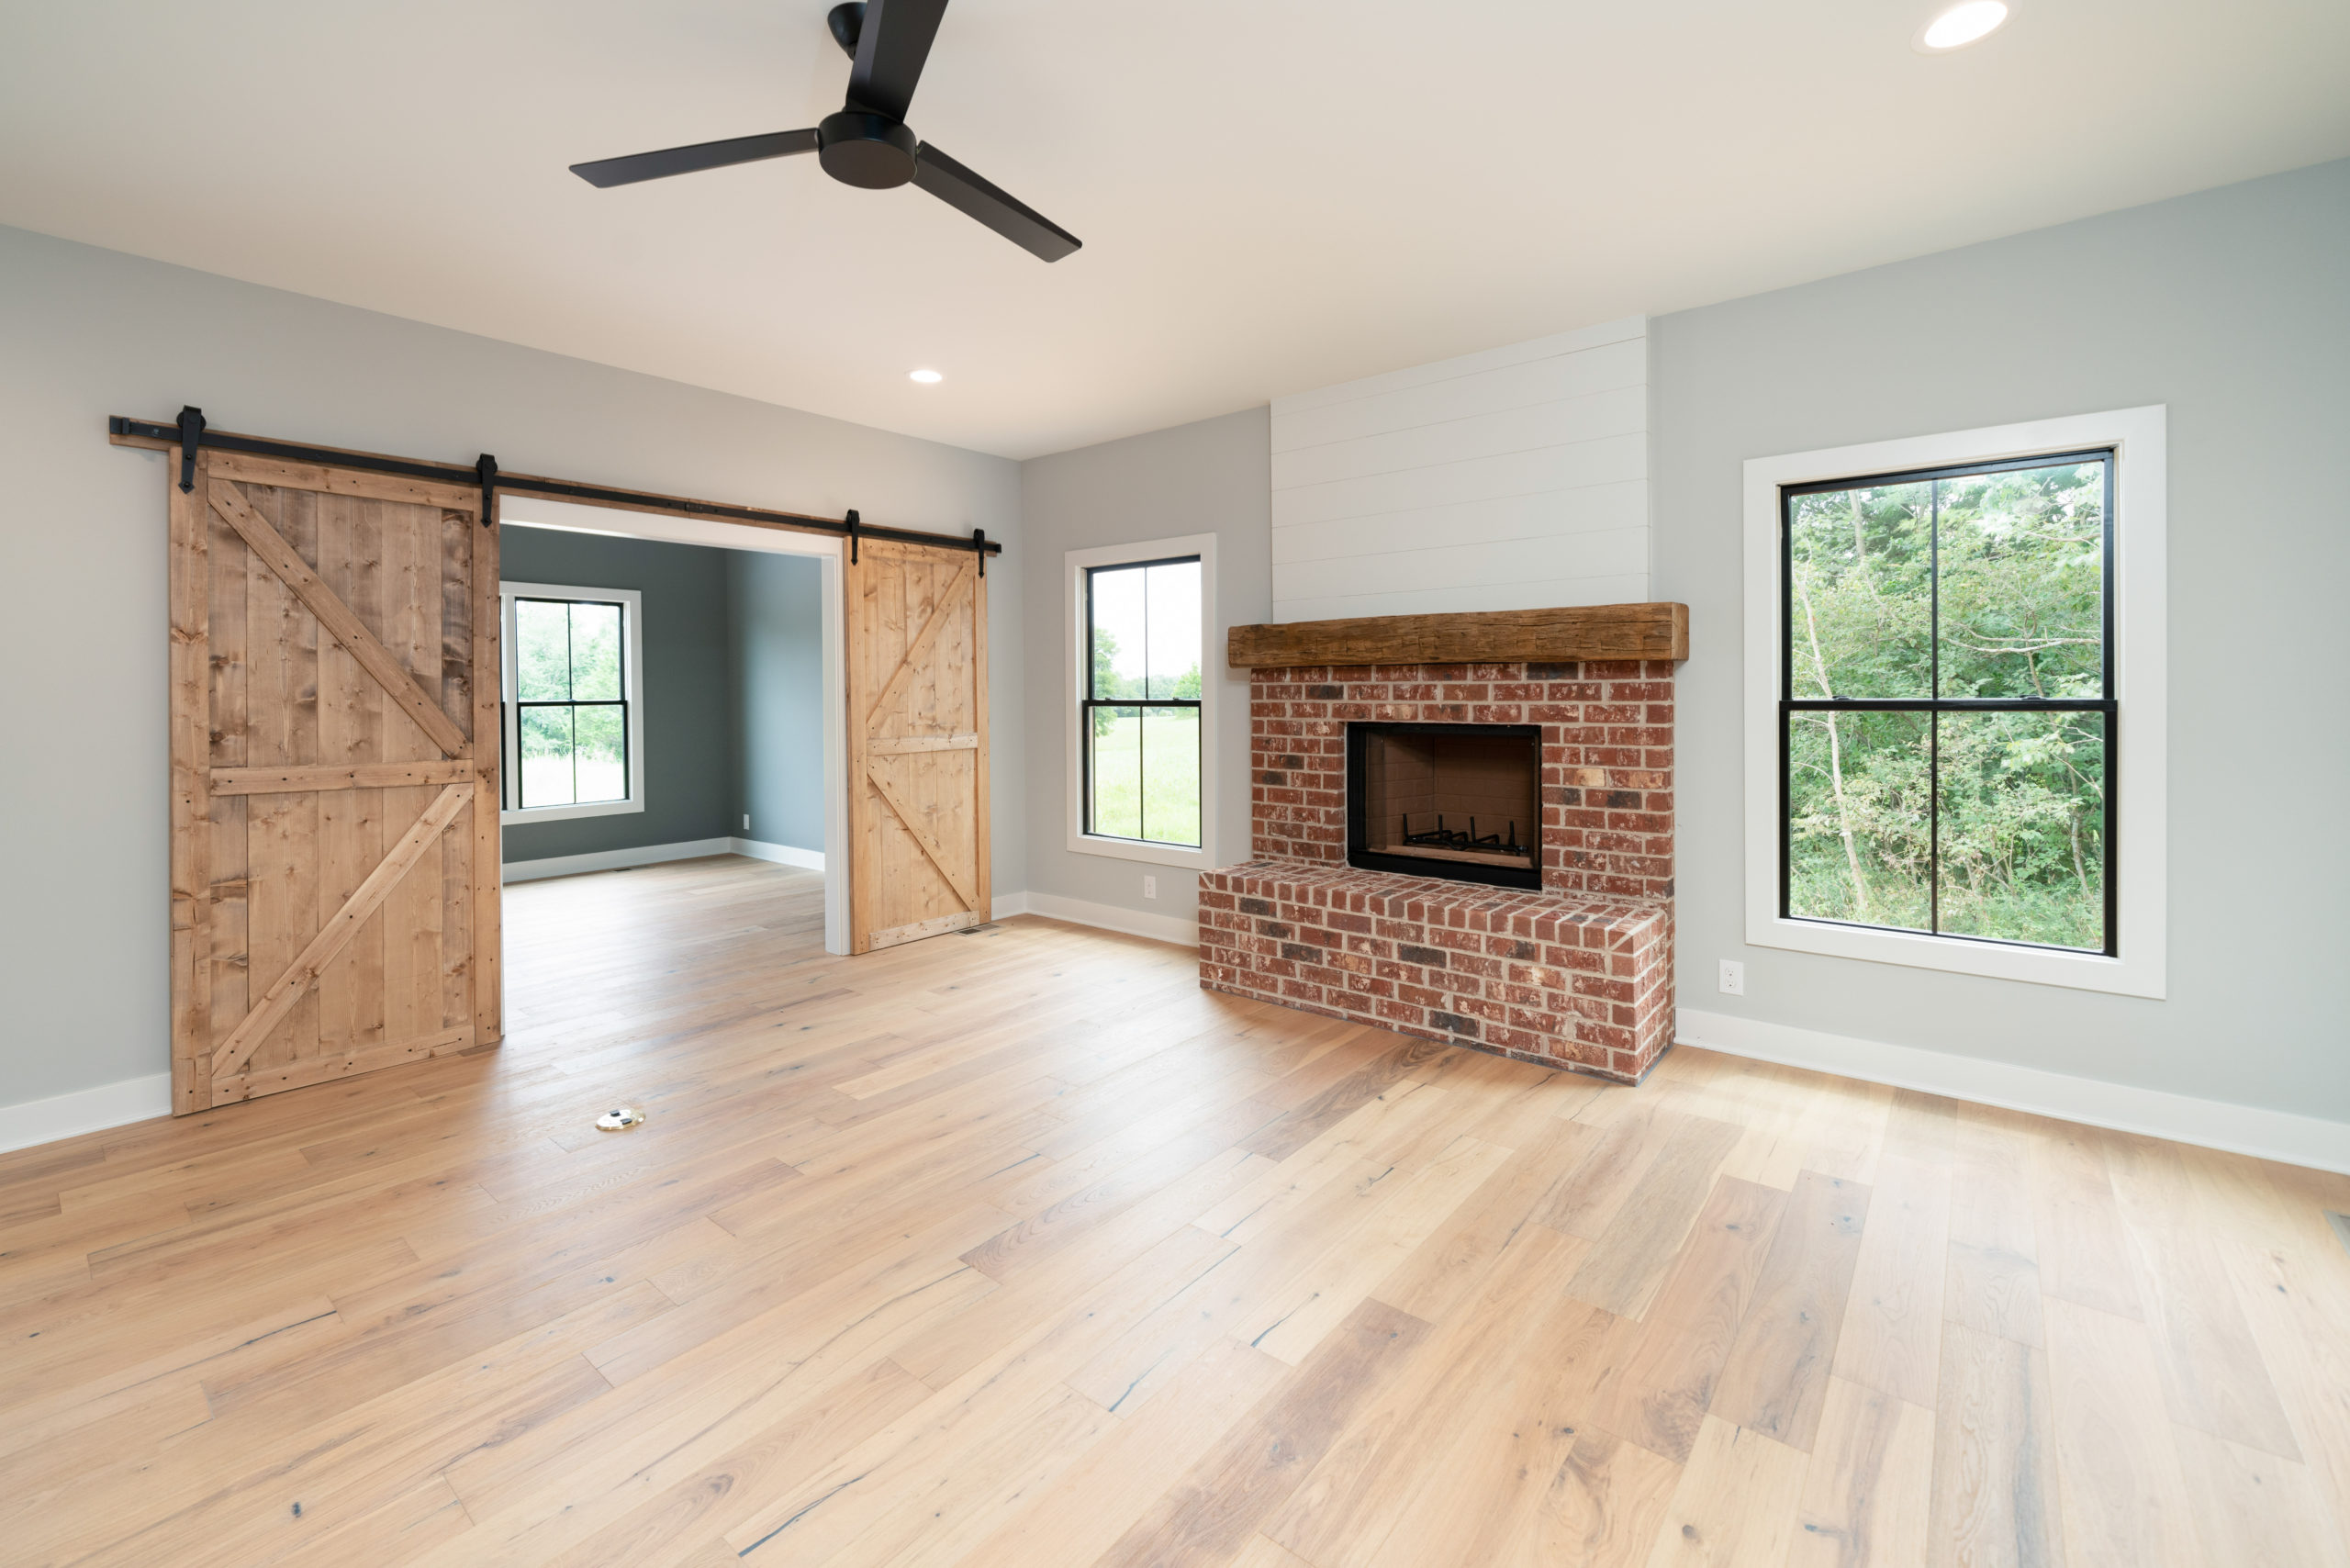 brick fireplace in living room with wood barn doors